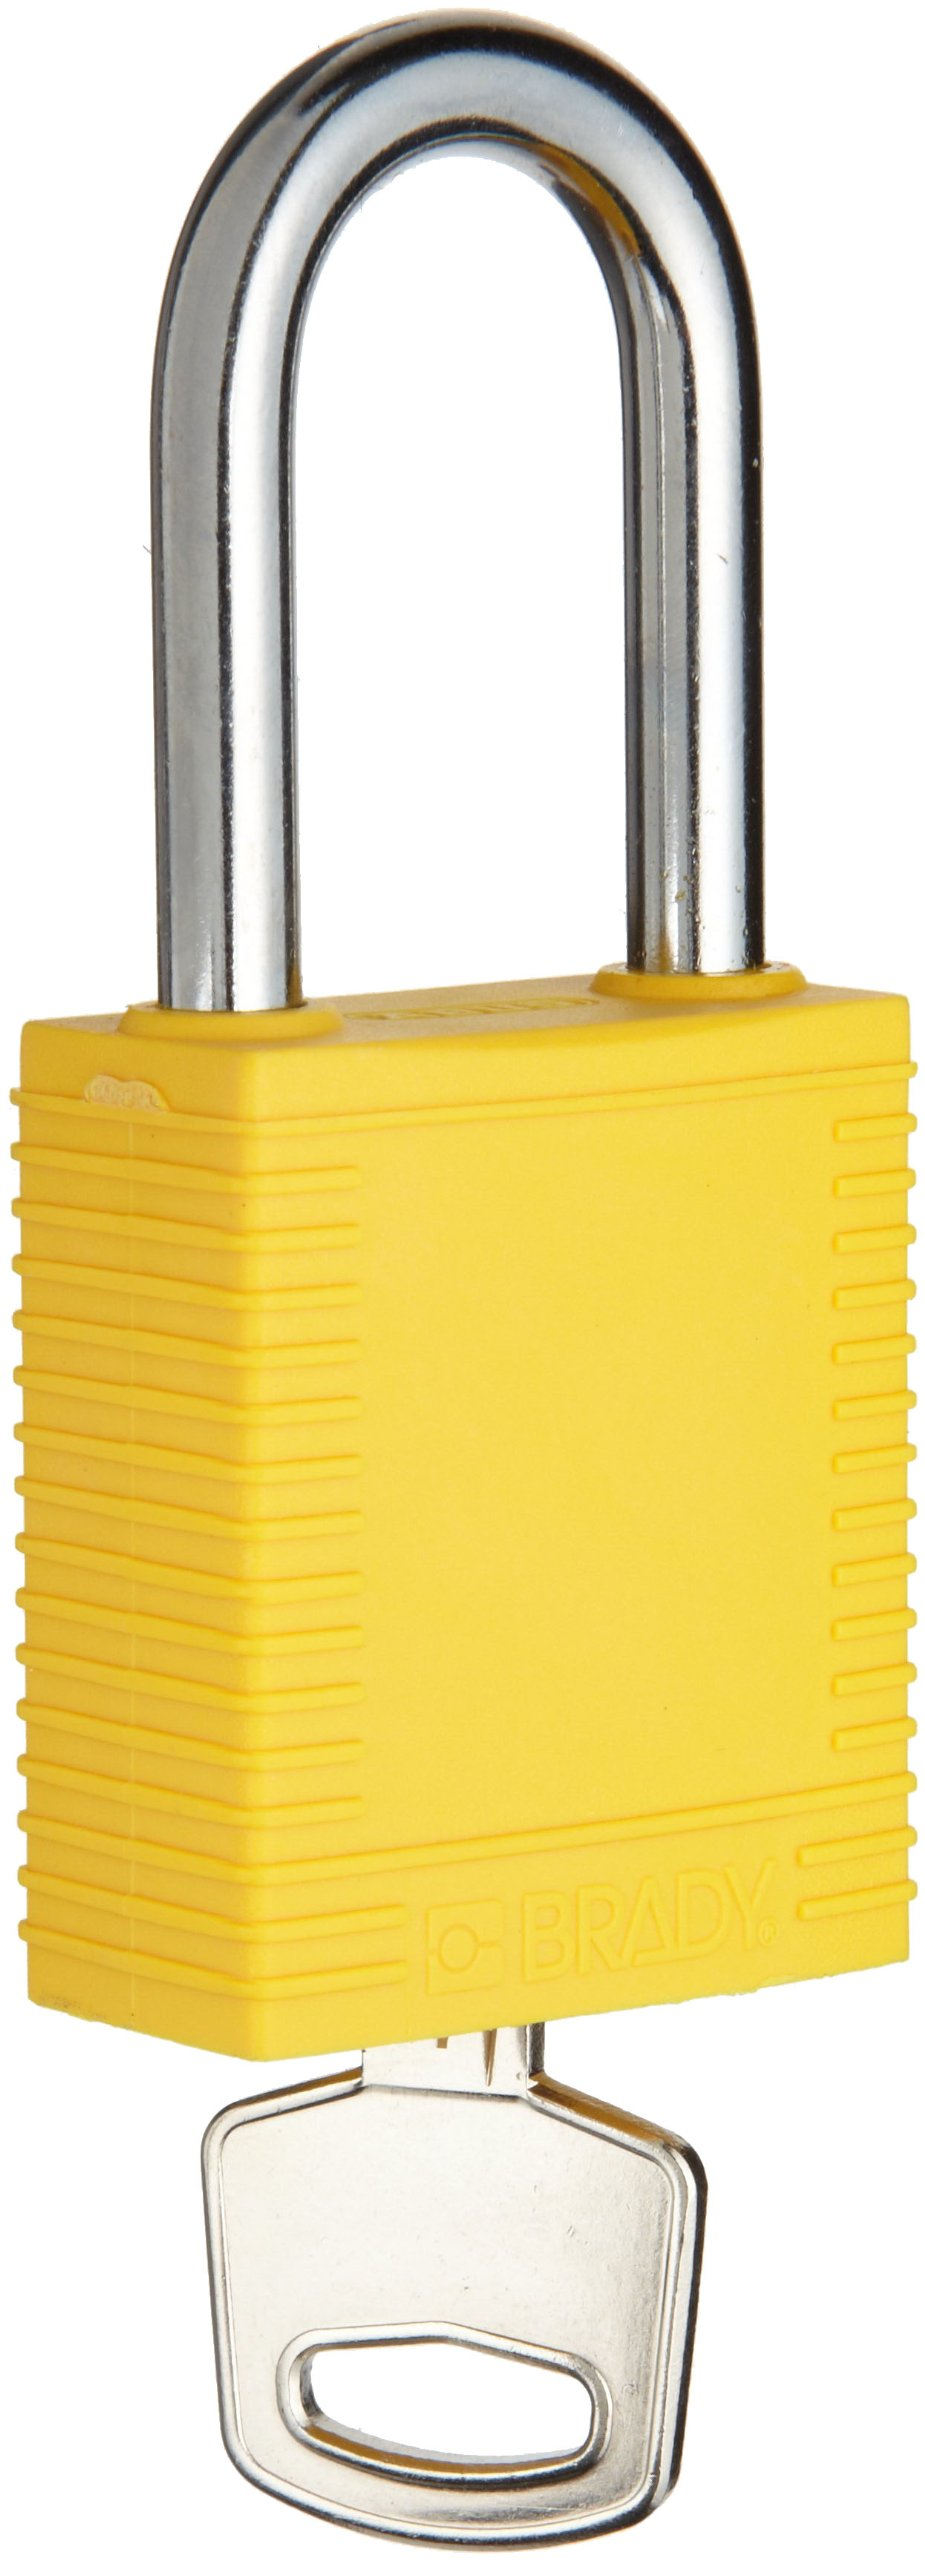 Brady Plastic Lockout/Tagout Padlock, Keyed Alike, 1-3/4'' Body Length, 1-1/2'' Shackle Clearance, Yellow (Pack of 6)